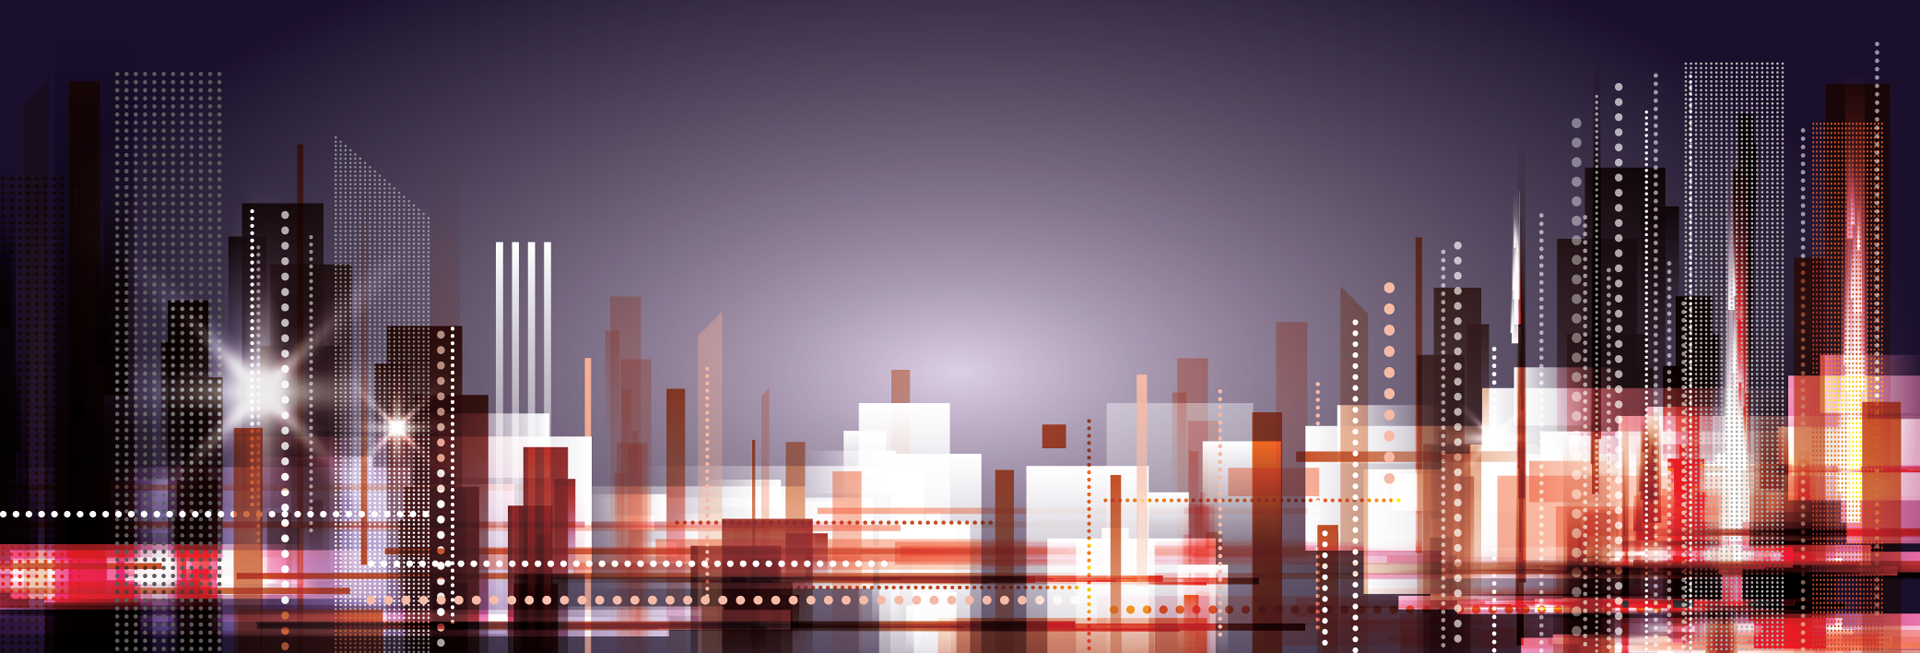 city silhouette banner background  city  silhouette  flat